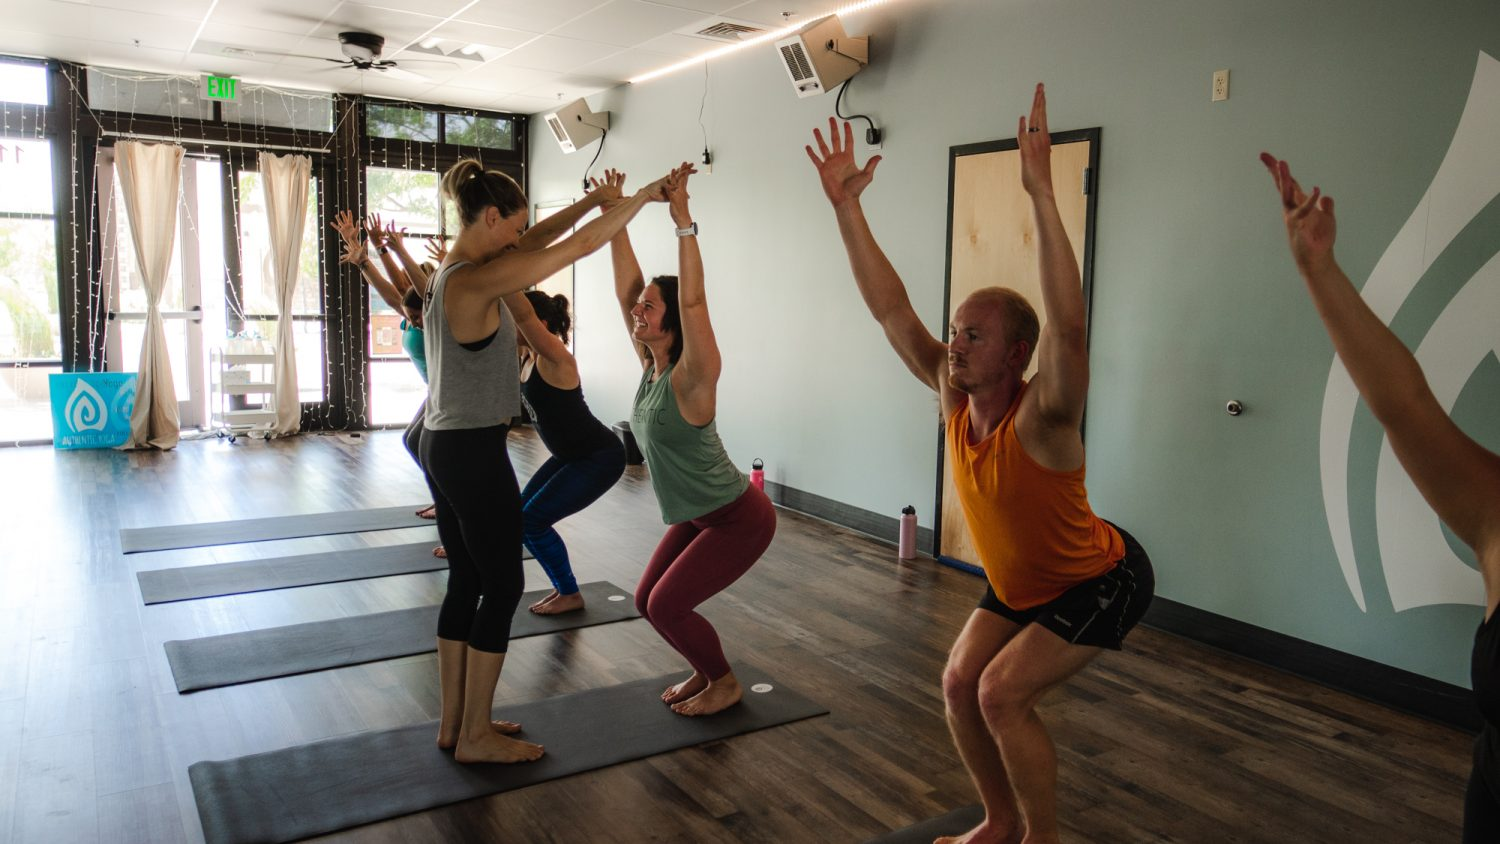 Yoga poses in boise studio location